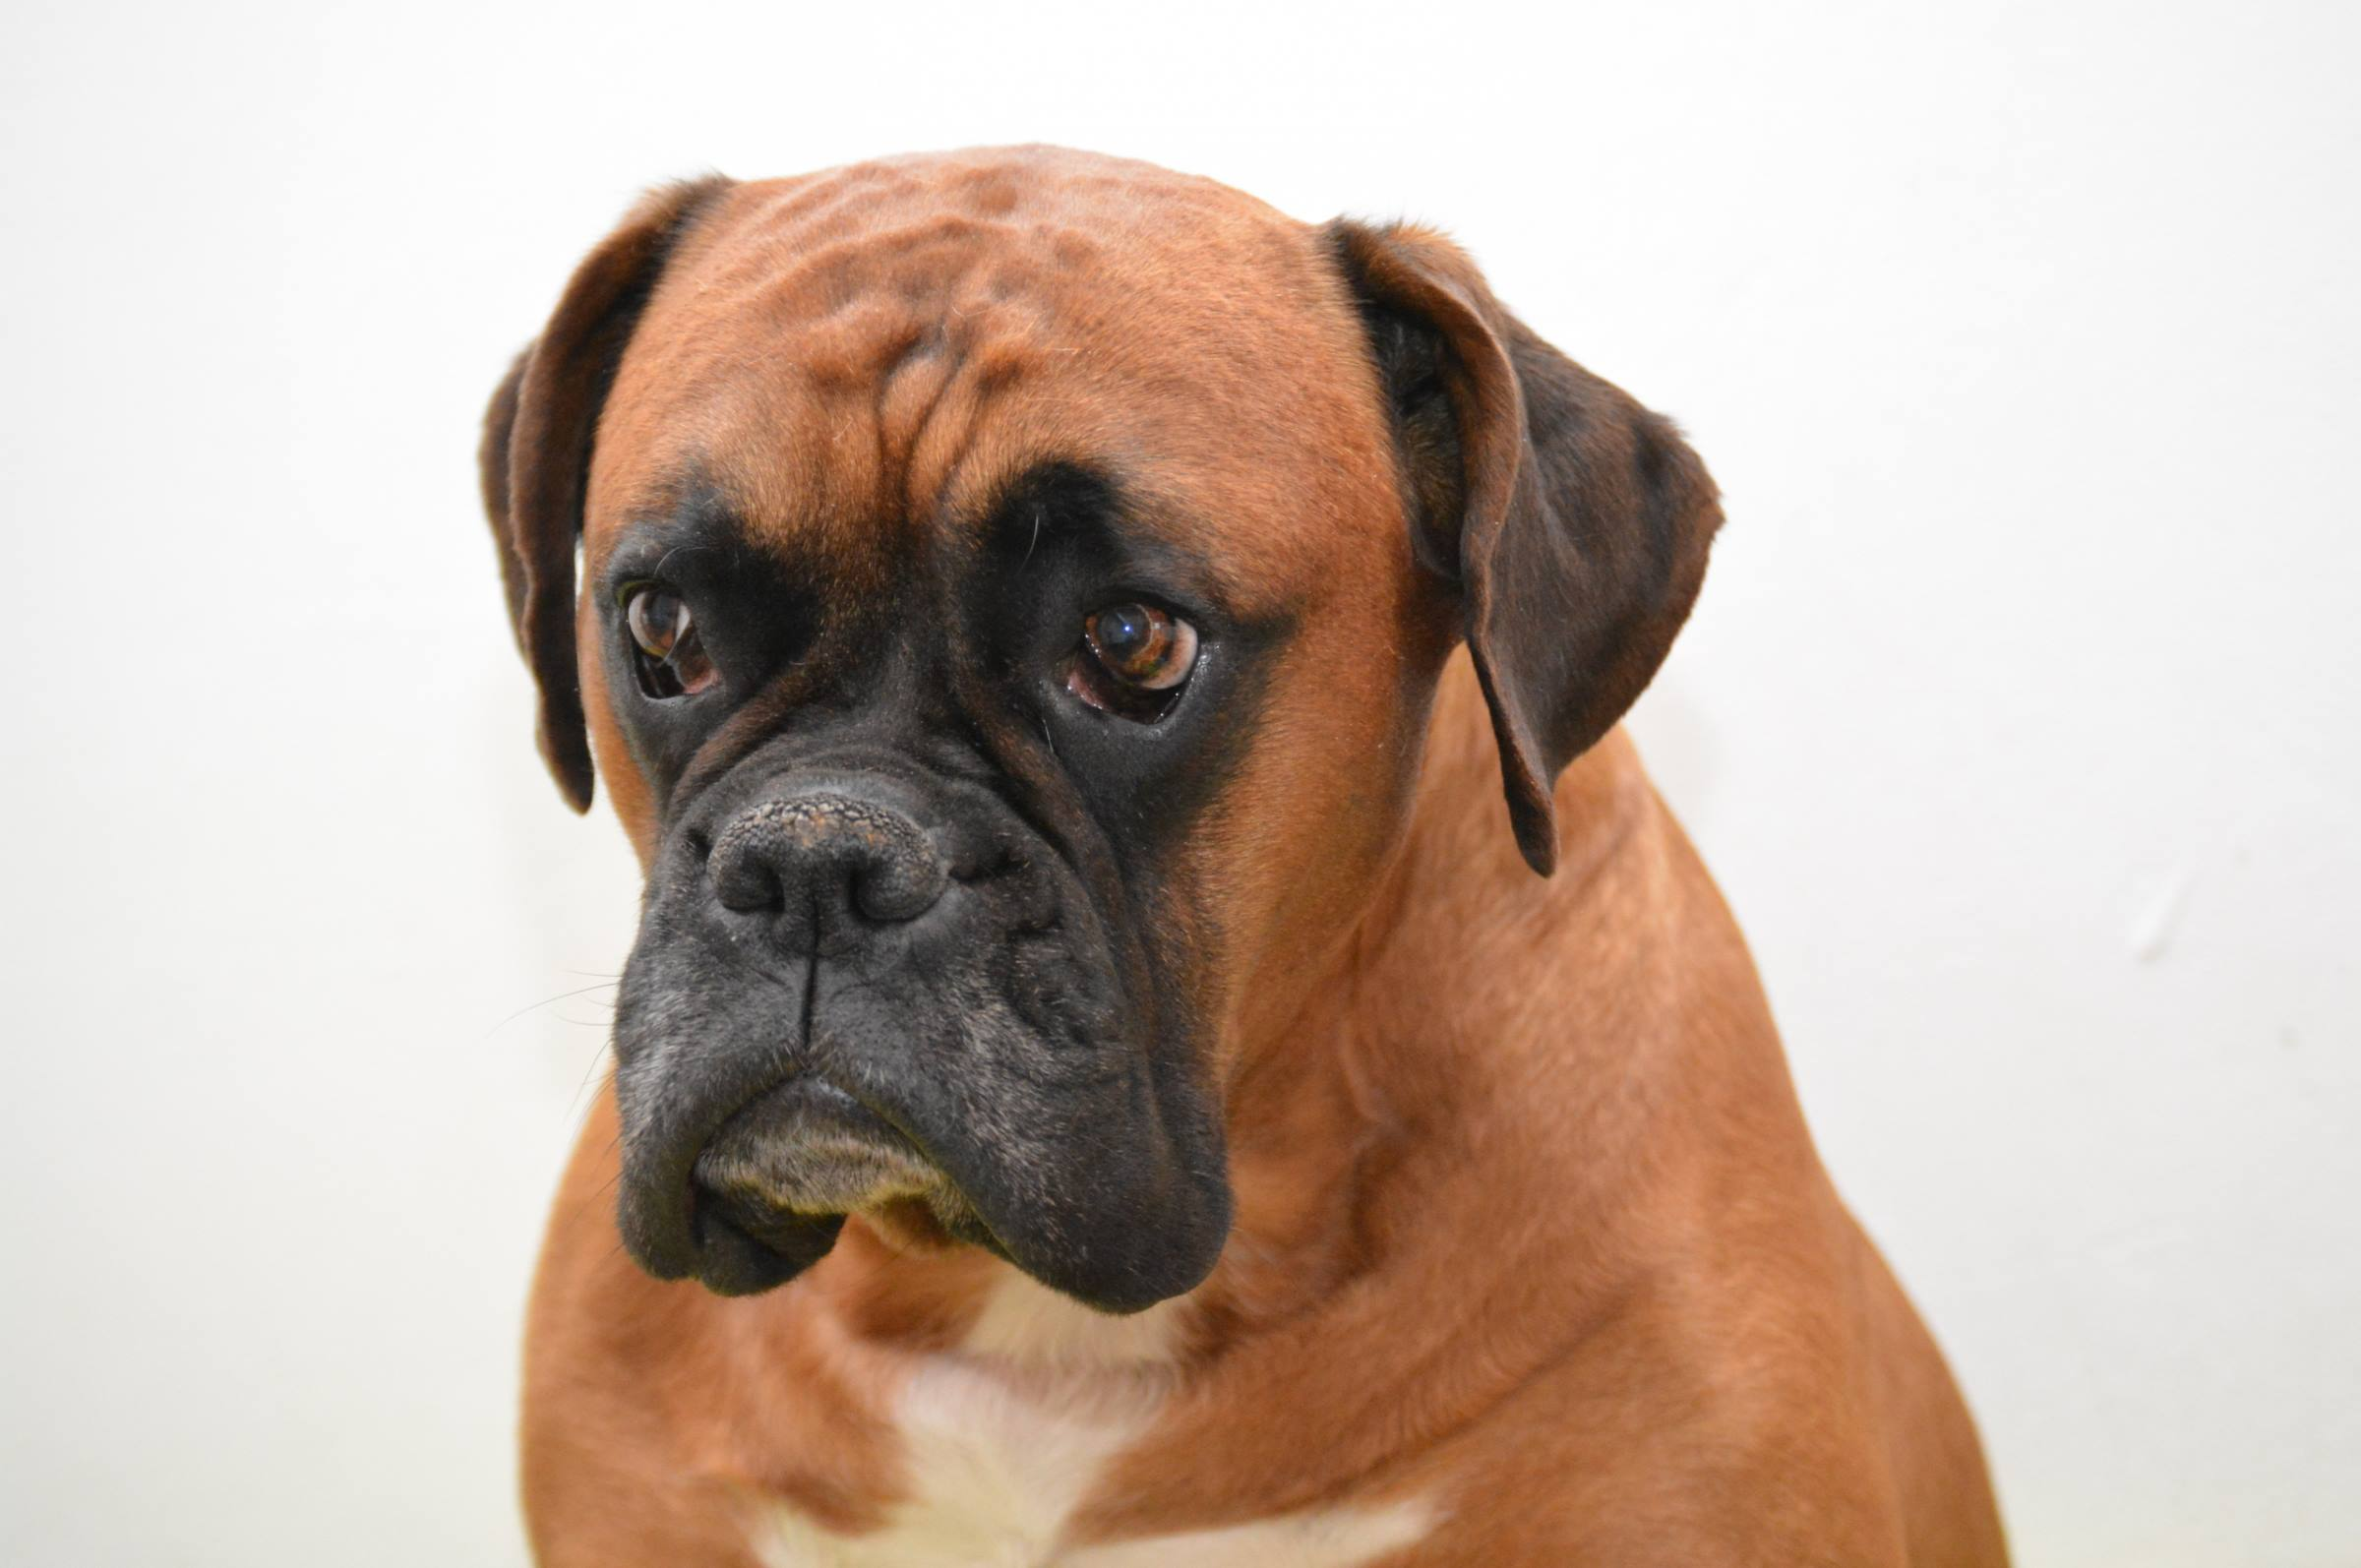 boxer dog portrait animal pet